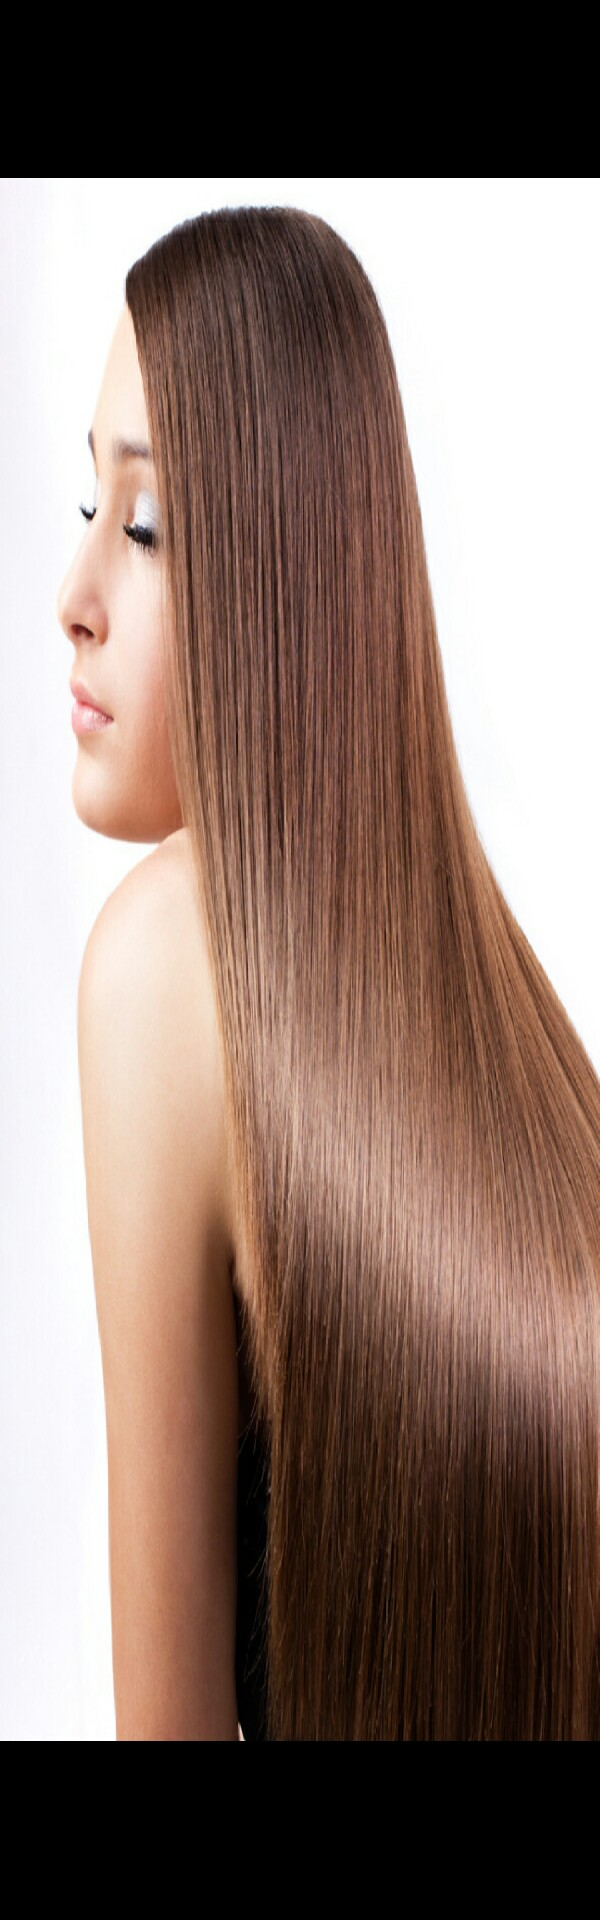 you can repeat whenever you think is necessary. it will leave you with BEAUTIFUL soft shiny hair! guaranteed!